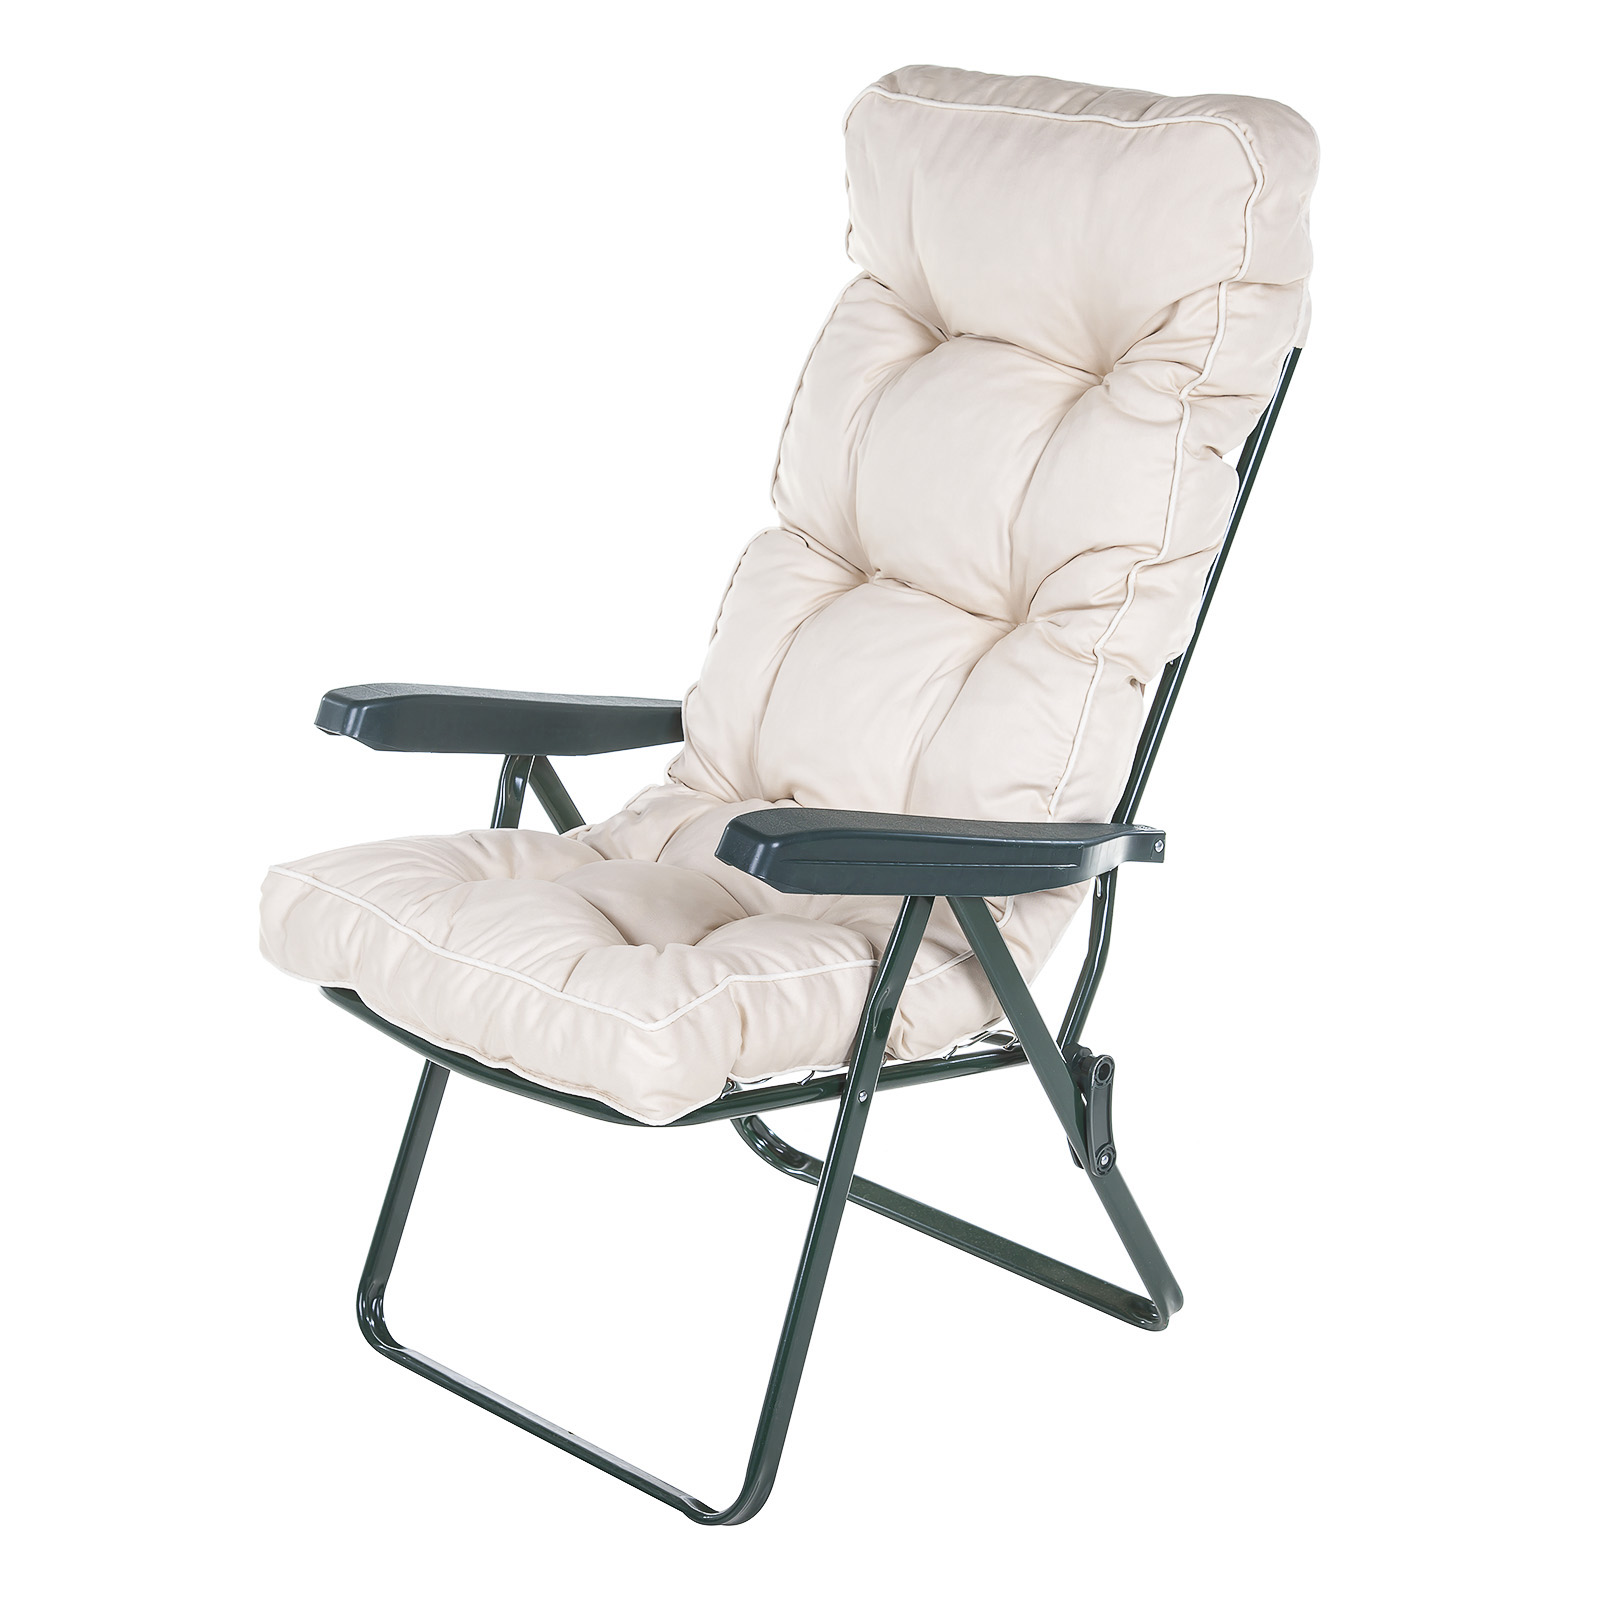 Garden Recliner Green Chair With Luxury Cushion Choice Of Colours